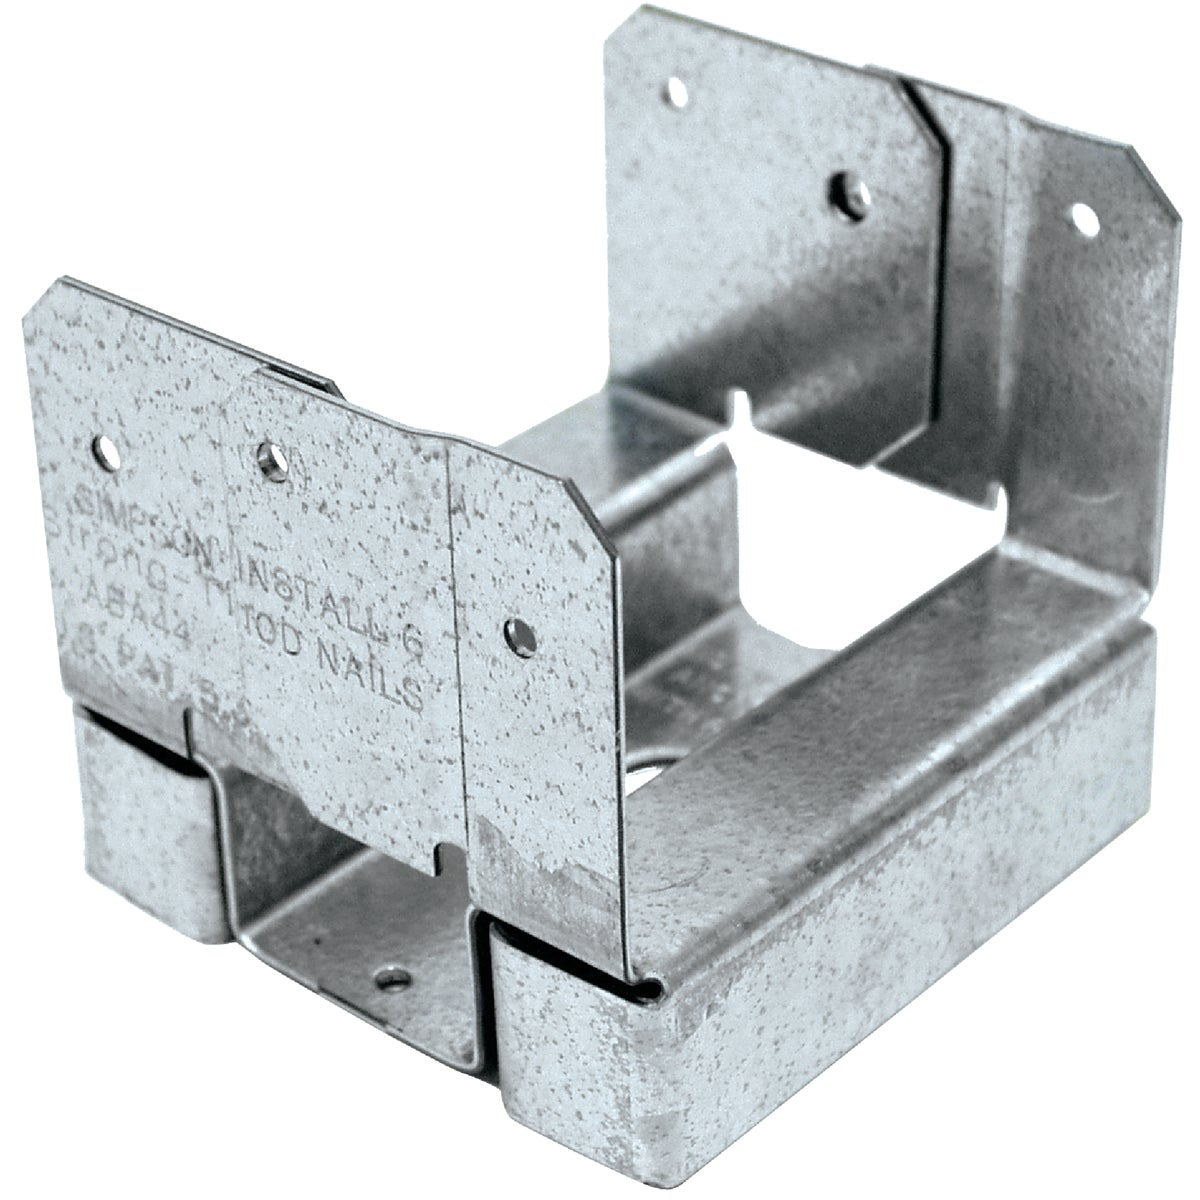 4X4 ADJ POST BASE Z-MAX - ABA44Z by Simpson Strong Tie